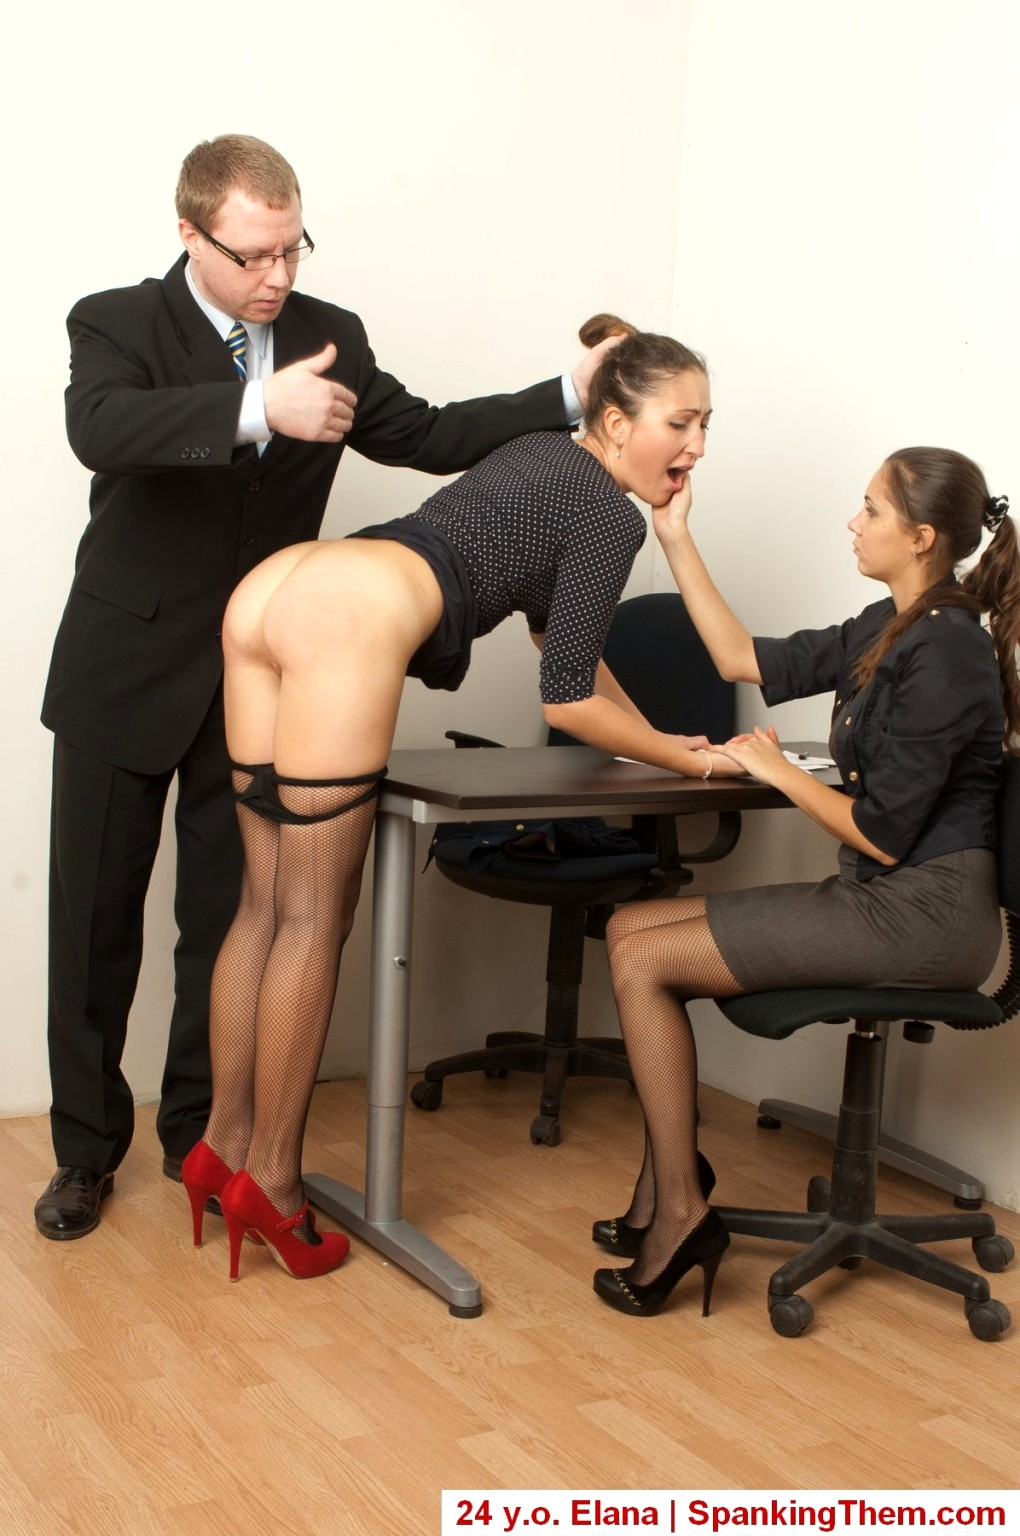 Hottest Spanking Lesbian Sex Galery, Best Spanking Lesbo Porn Images